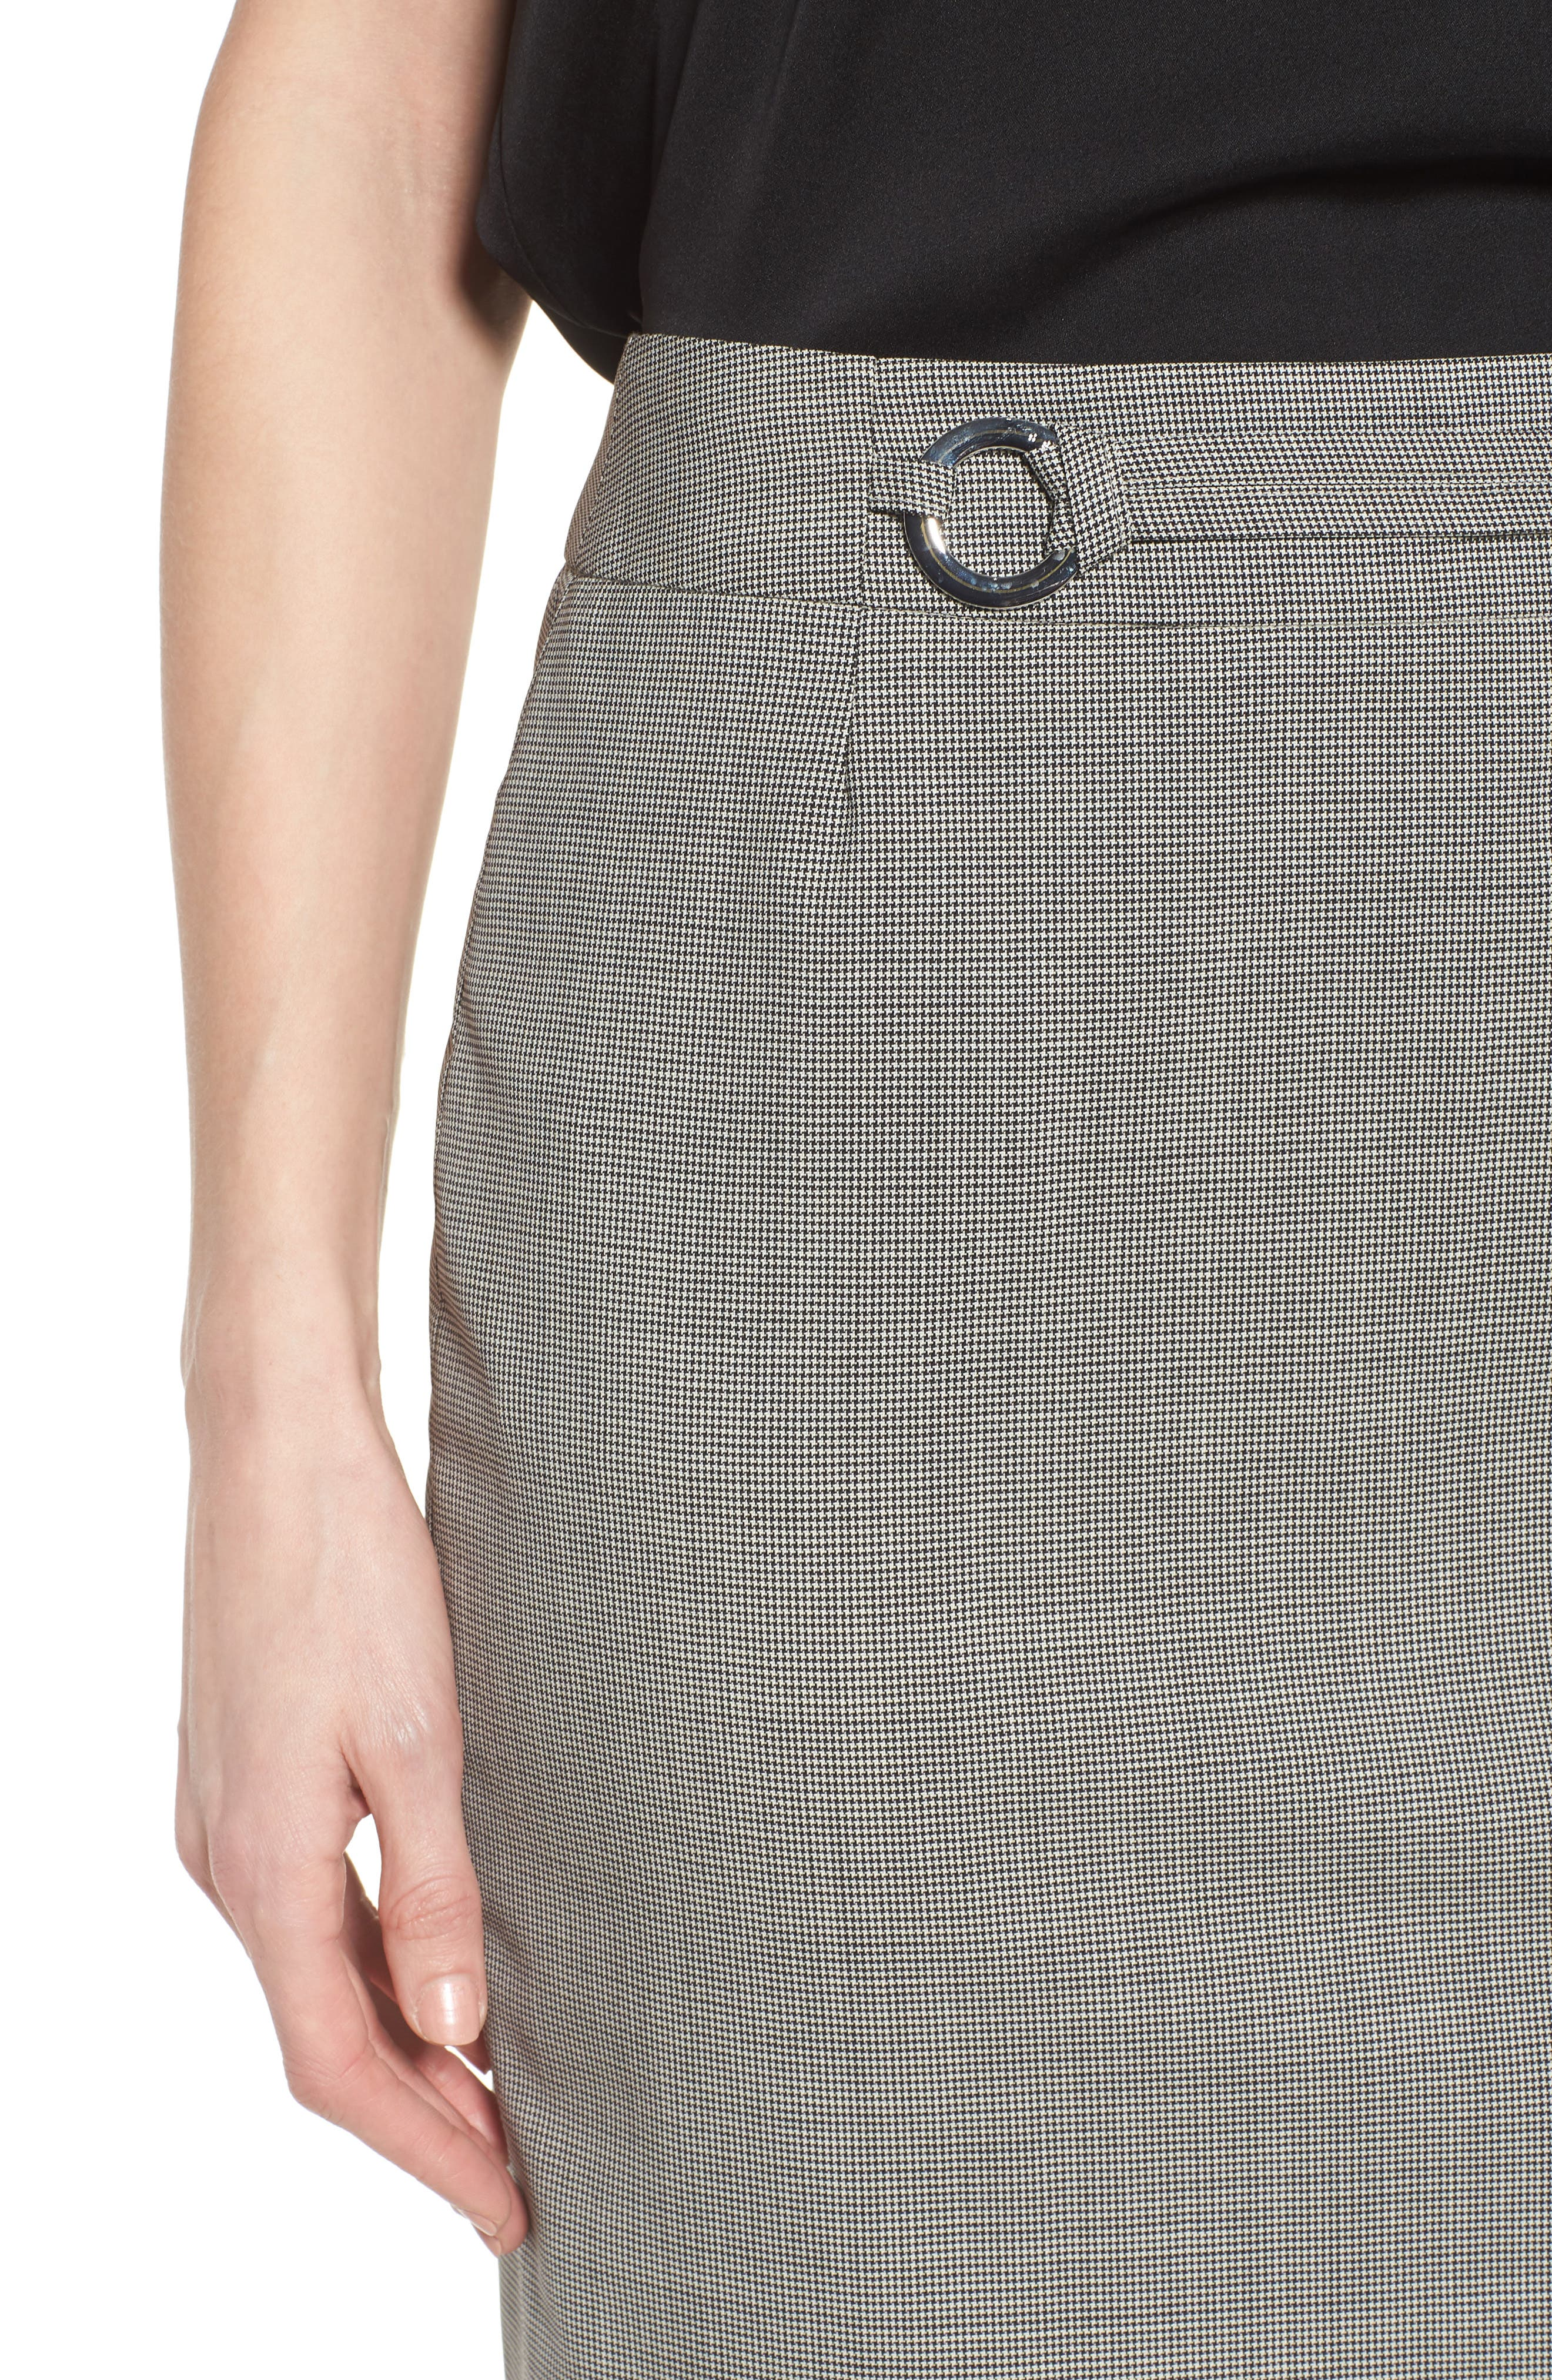 Vavilla Stretch Wool Suit Skirt,                             Alternate thumbnail 4, color,                             006